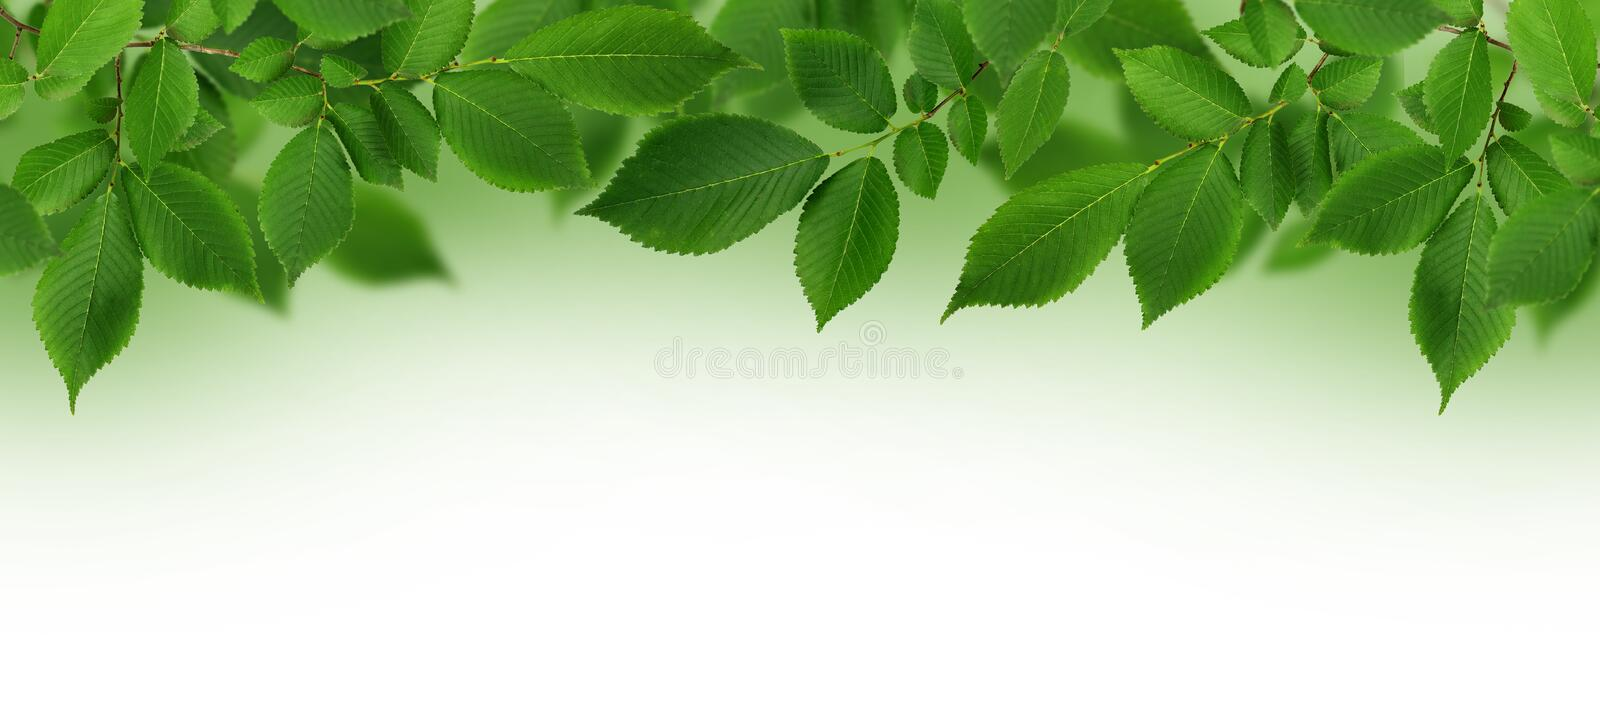 Border with branch of fresh green elm-tree leaves for background royalty free stock photo